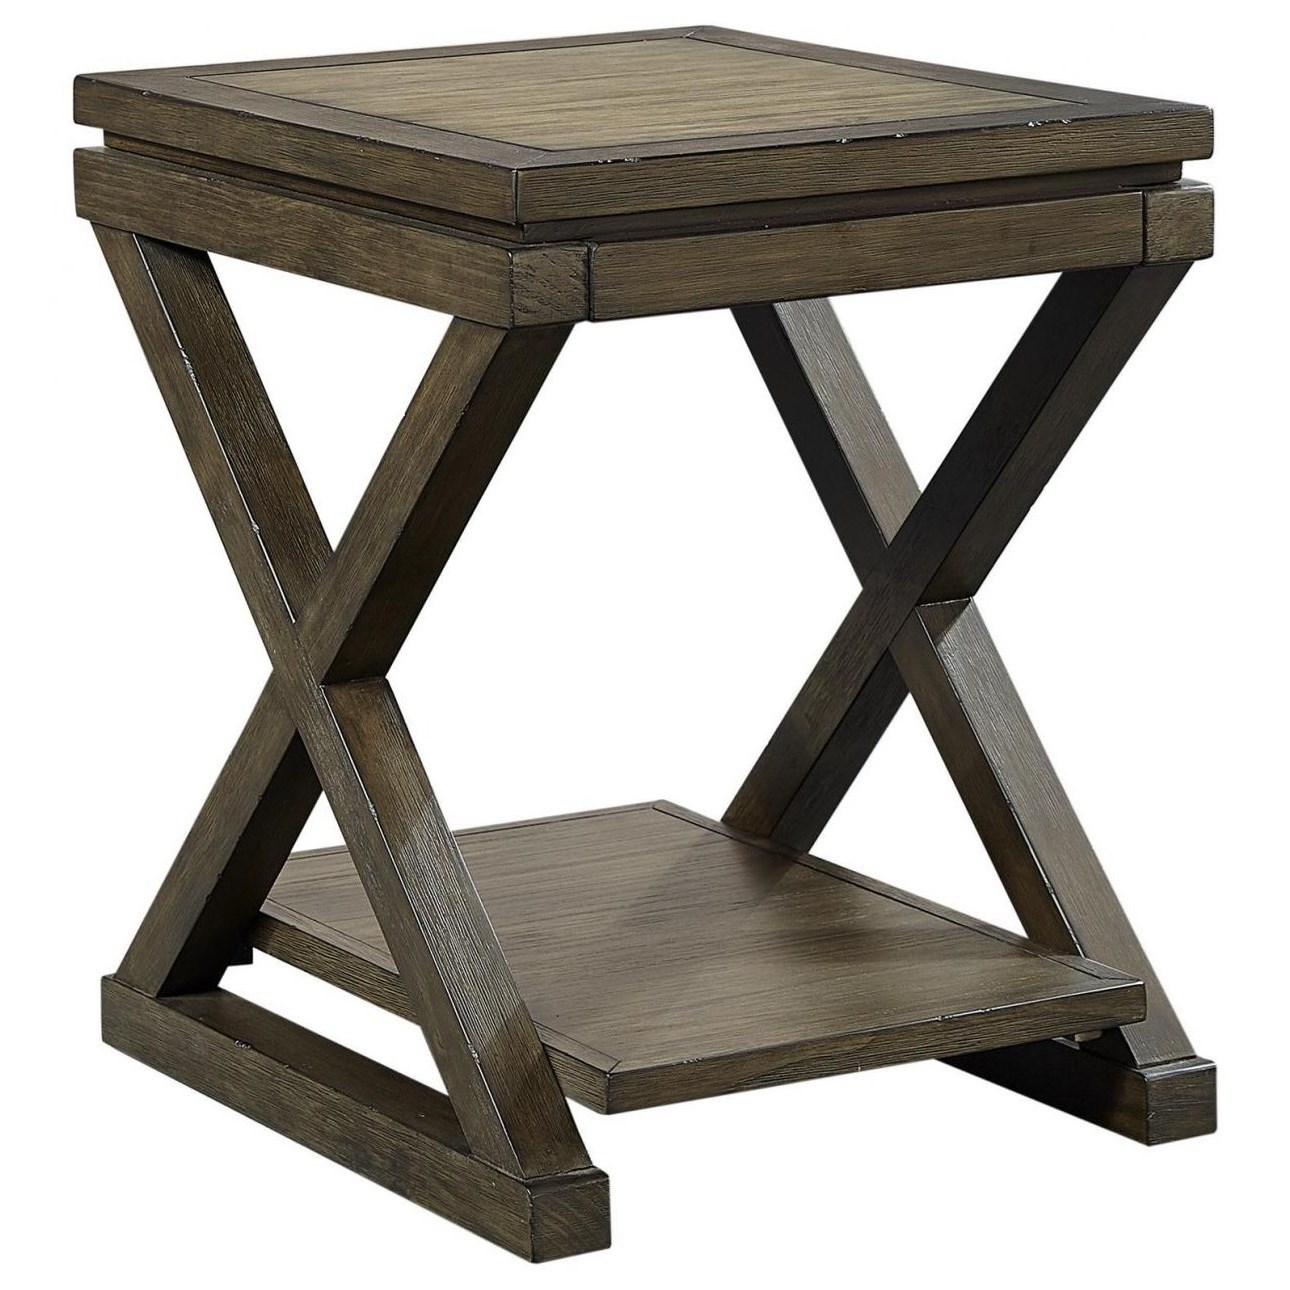 Westlake Chairside table  by Aspenhome at Walker's Furniture